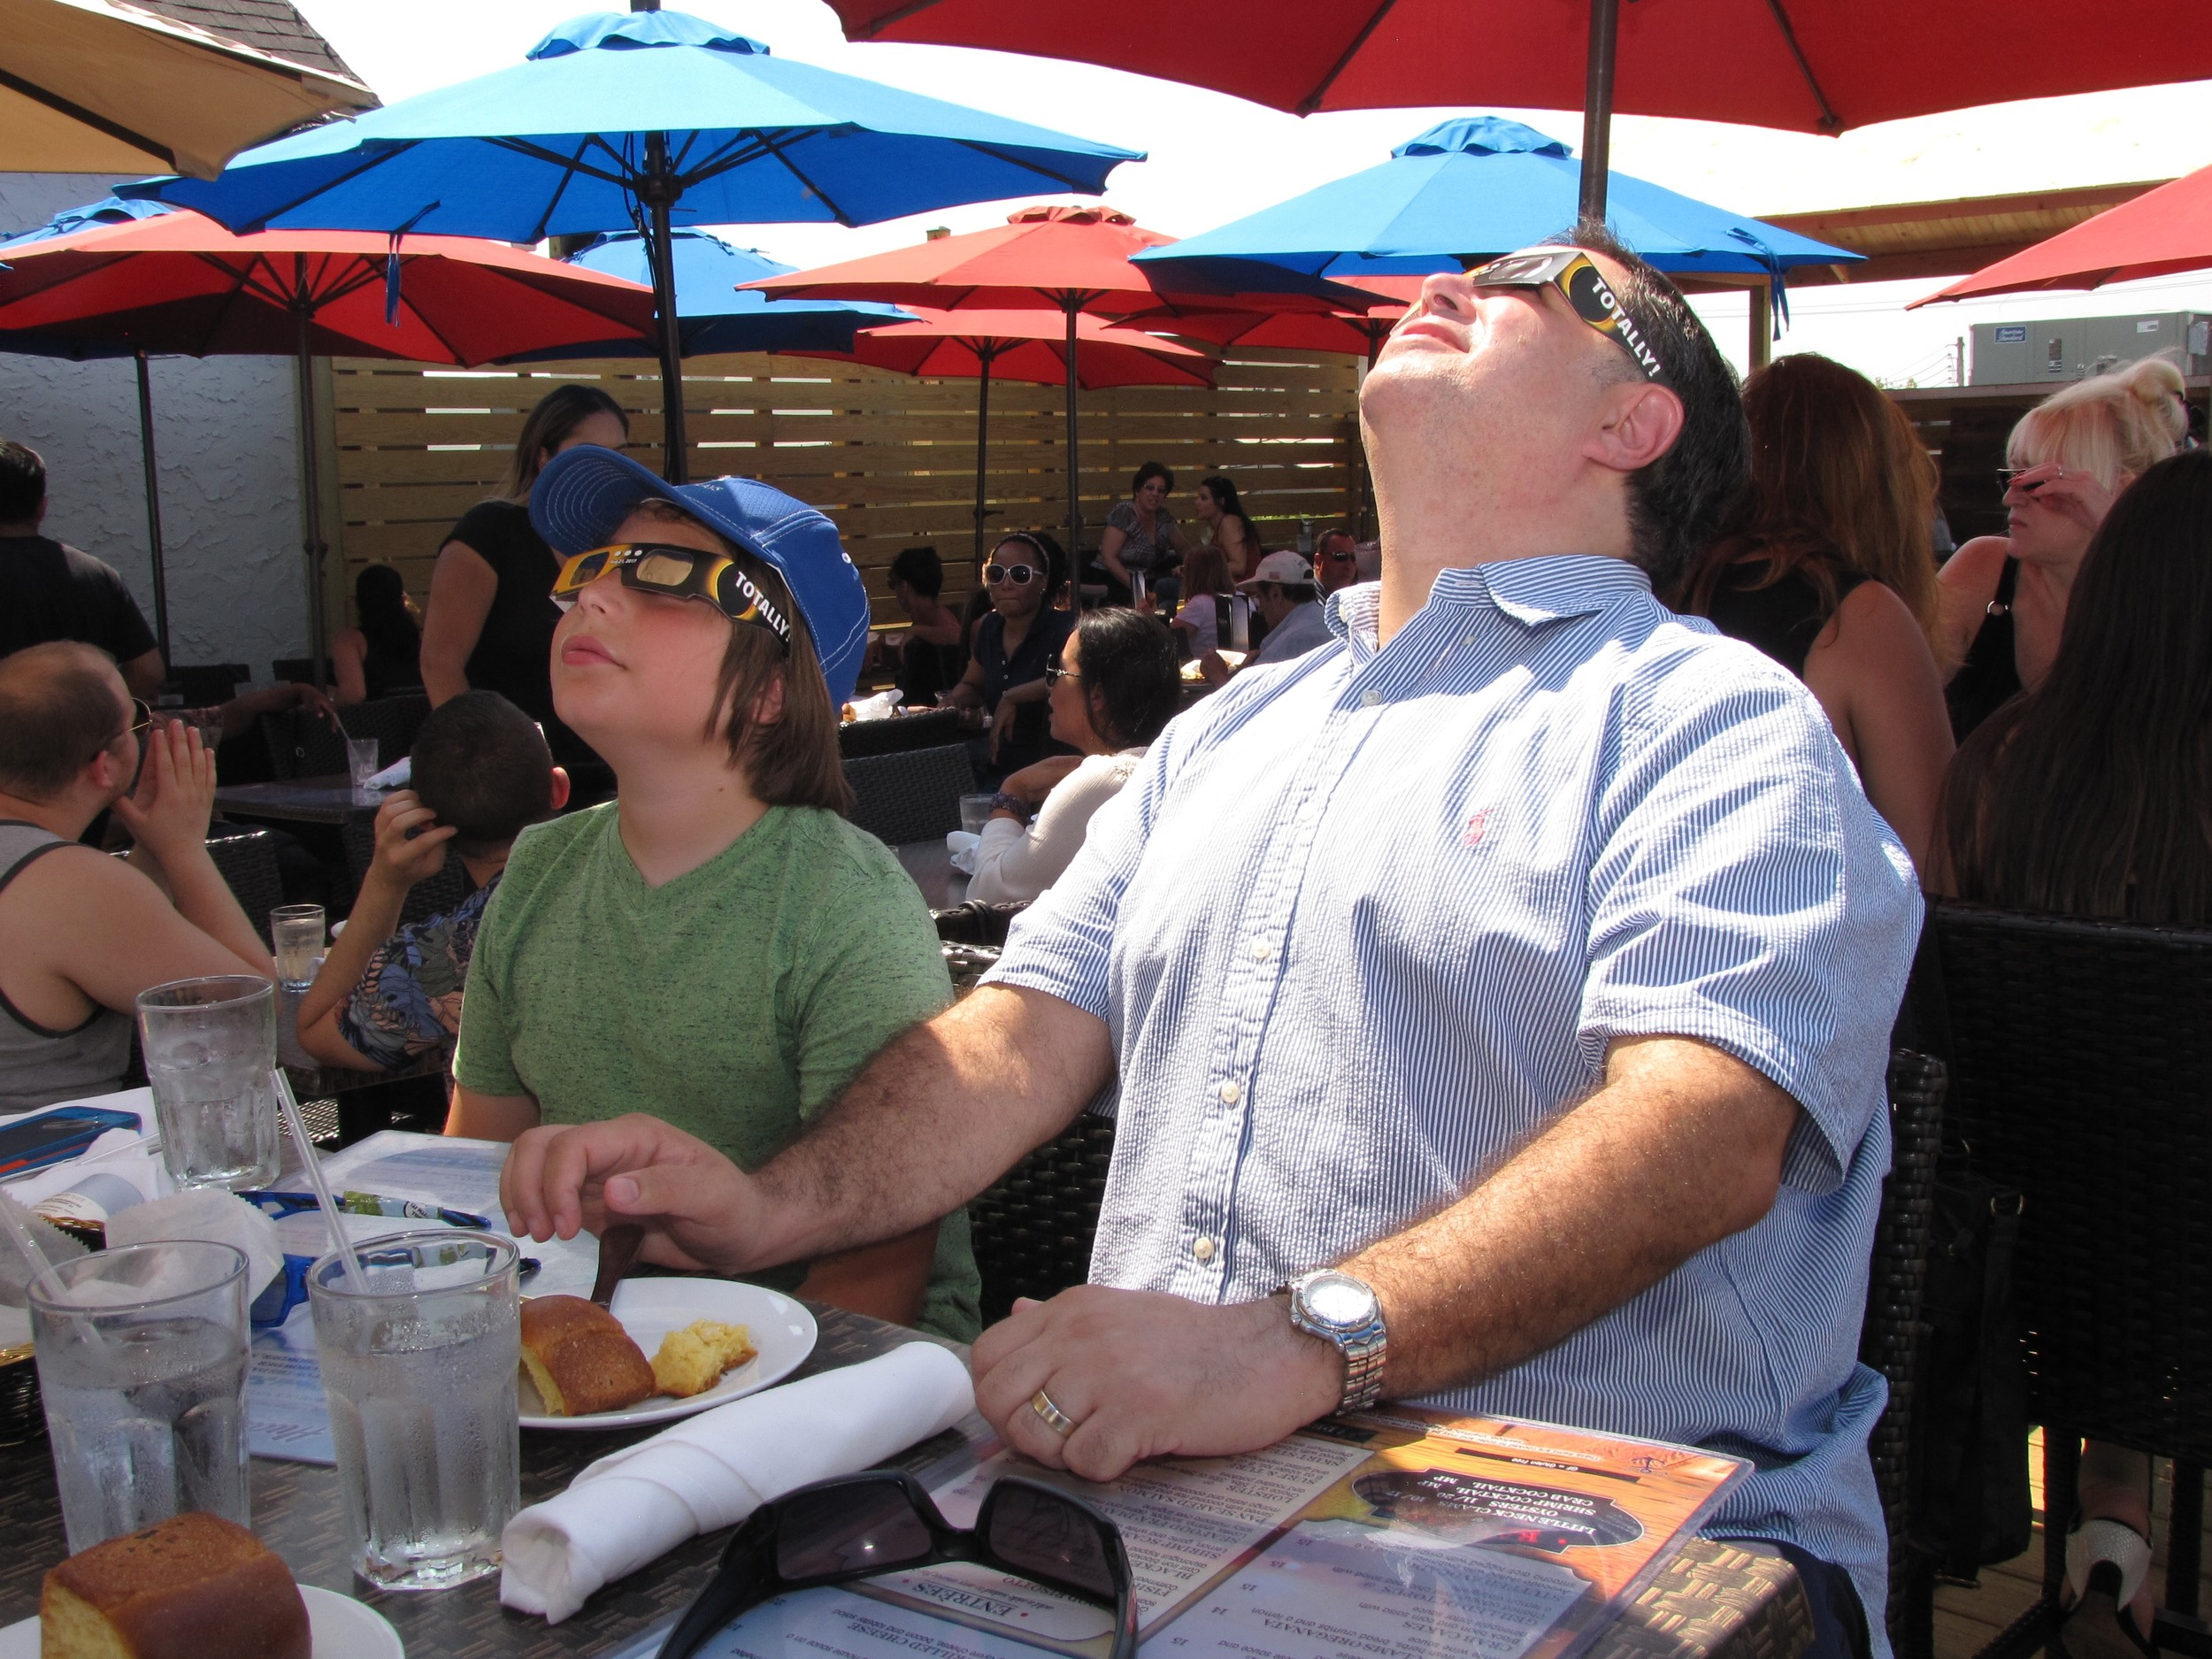 After grabbing lunch, father and son Ross and David Schiller got a glimpse of the astronomical goings-on.